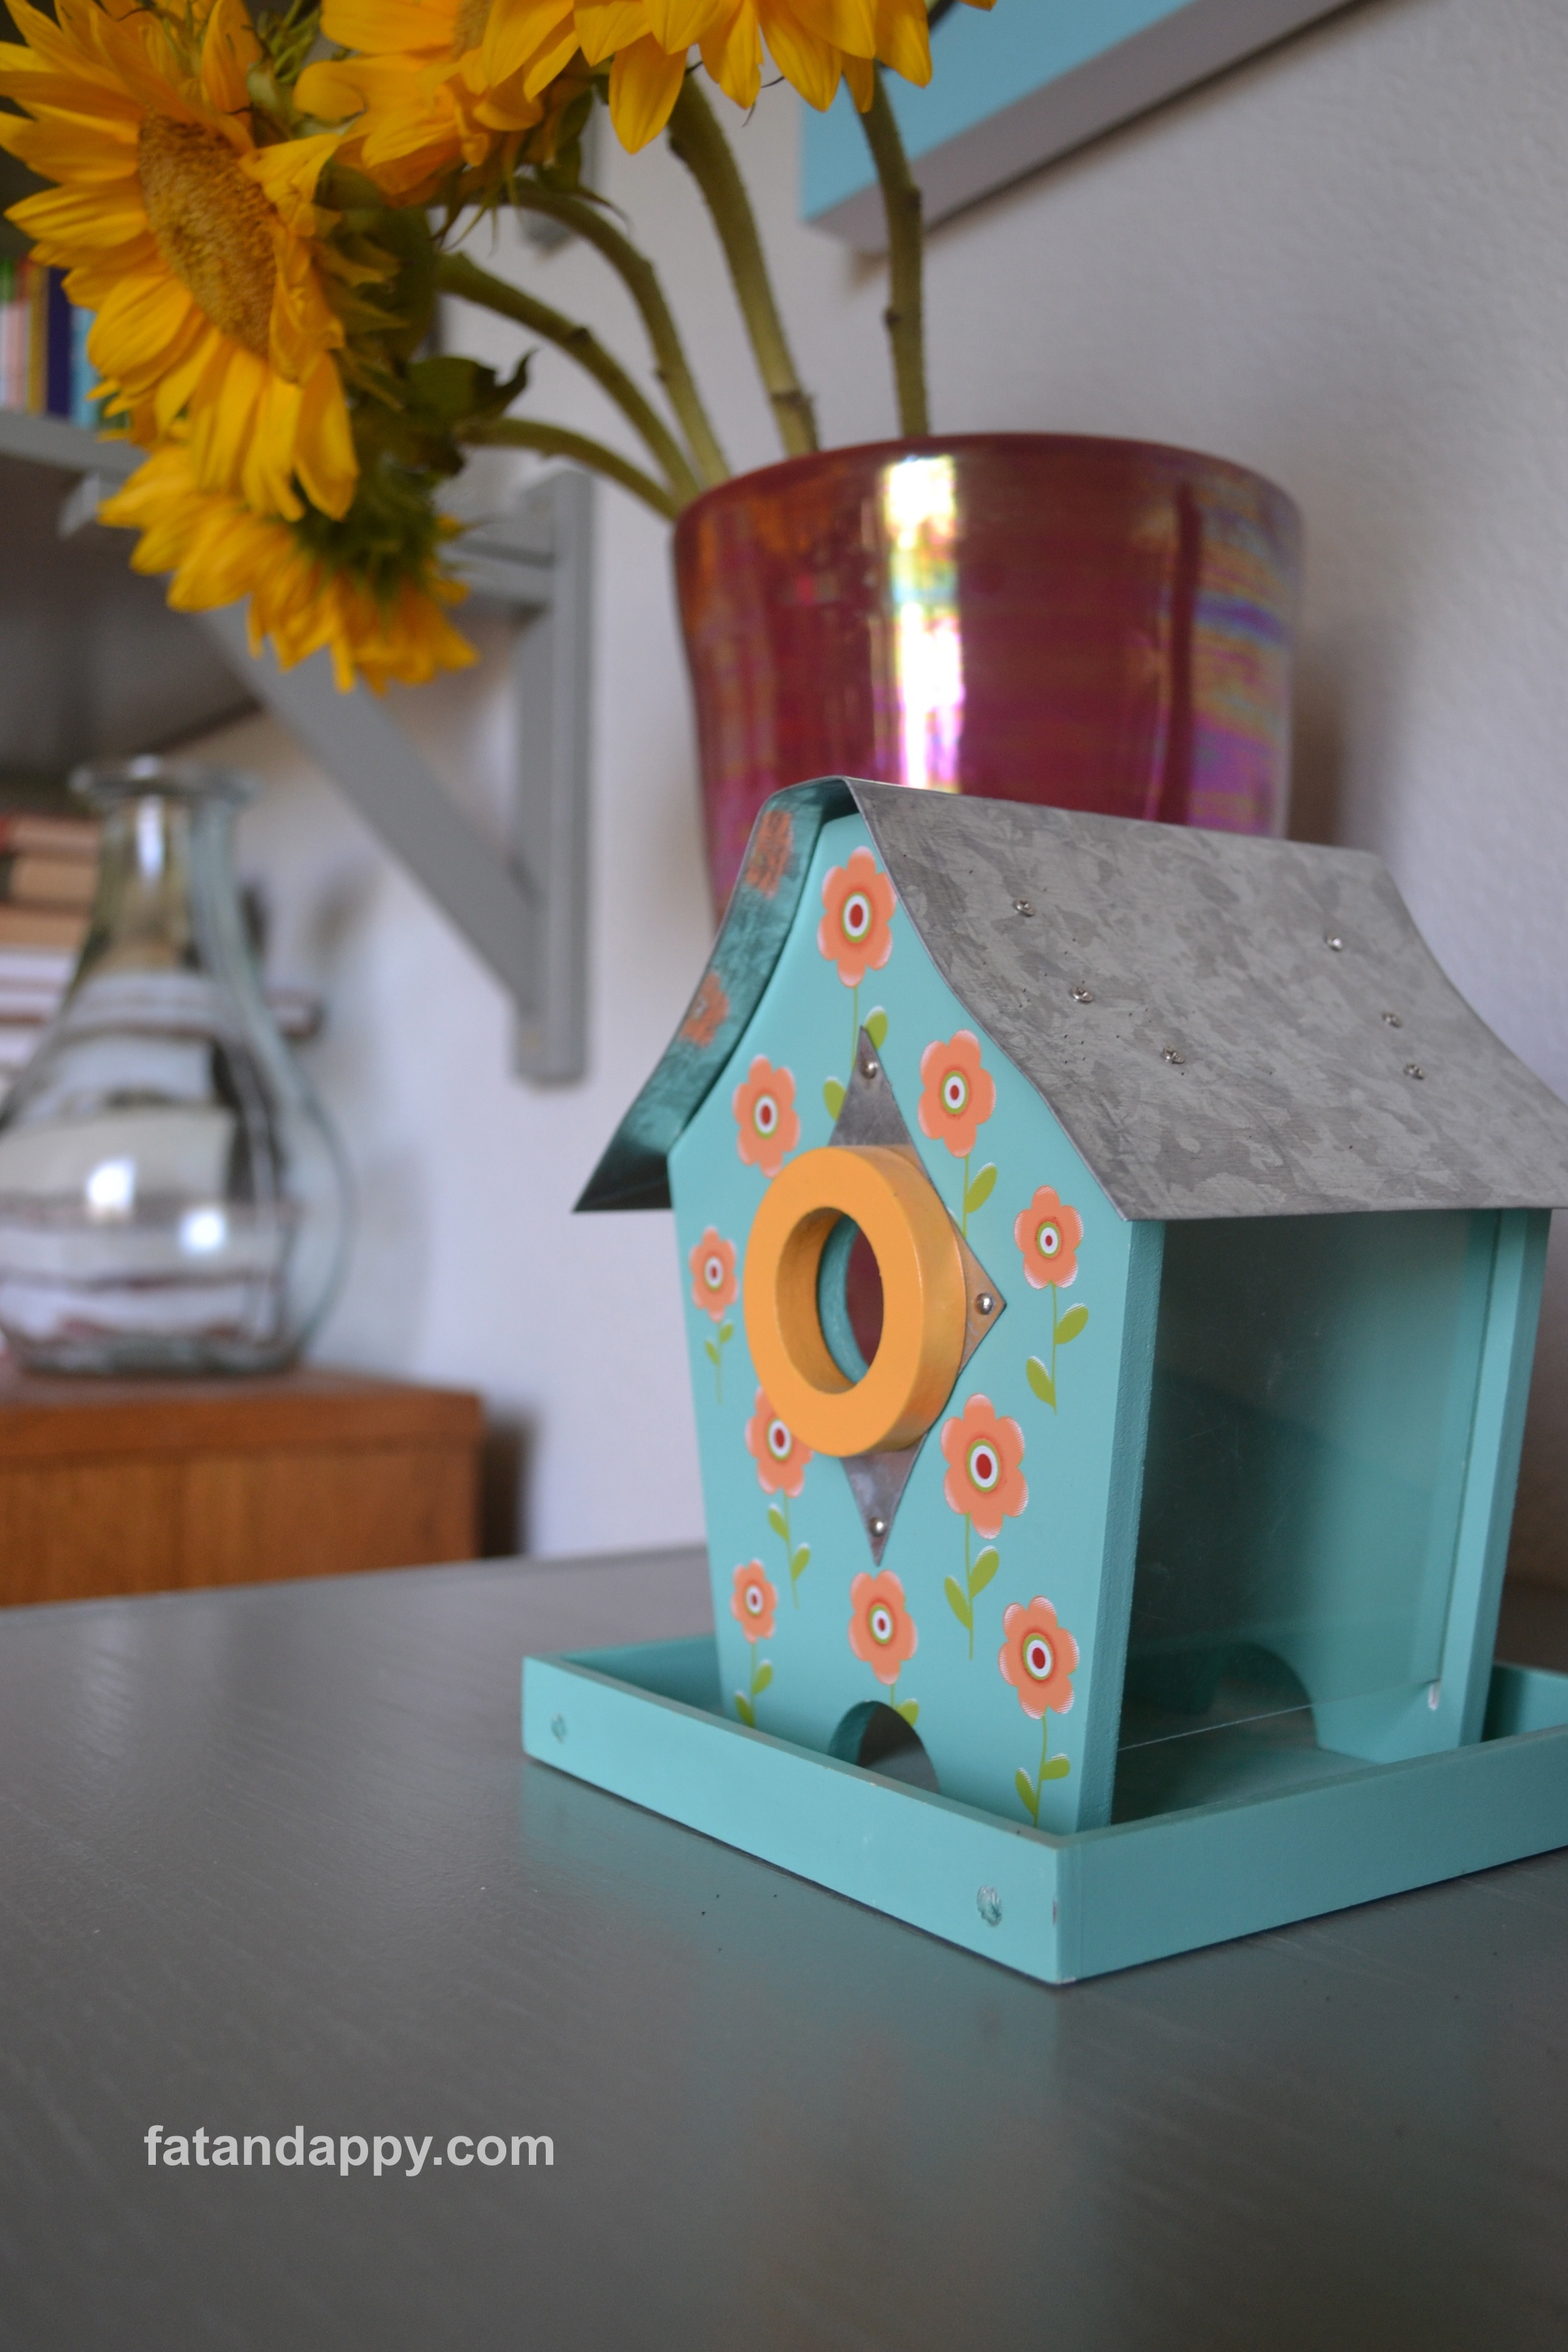 A picture of a colorful birdhouse from I Love Your Work, Jonathan Fenske